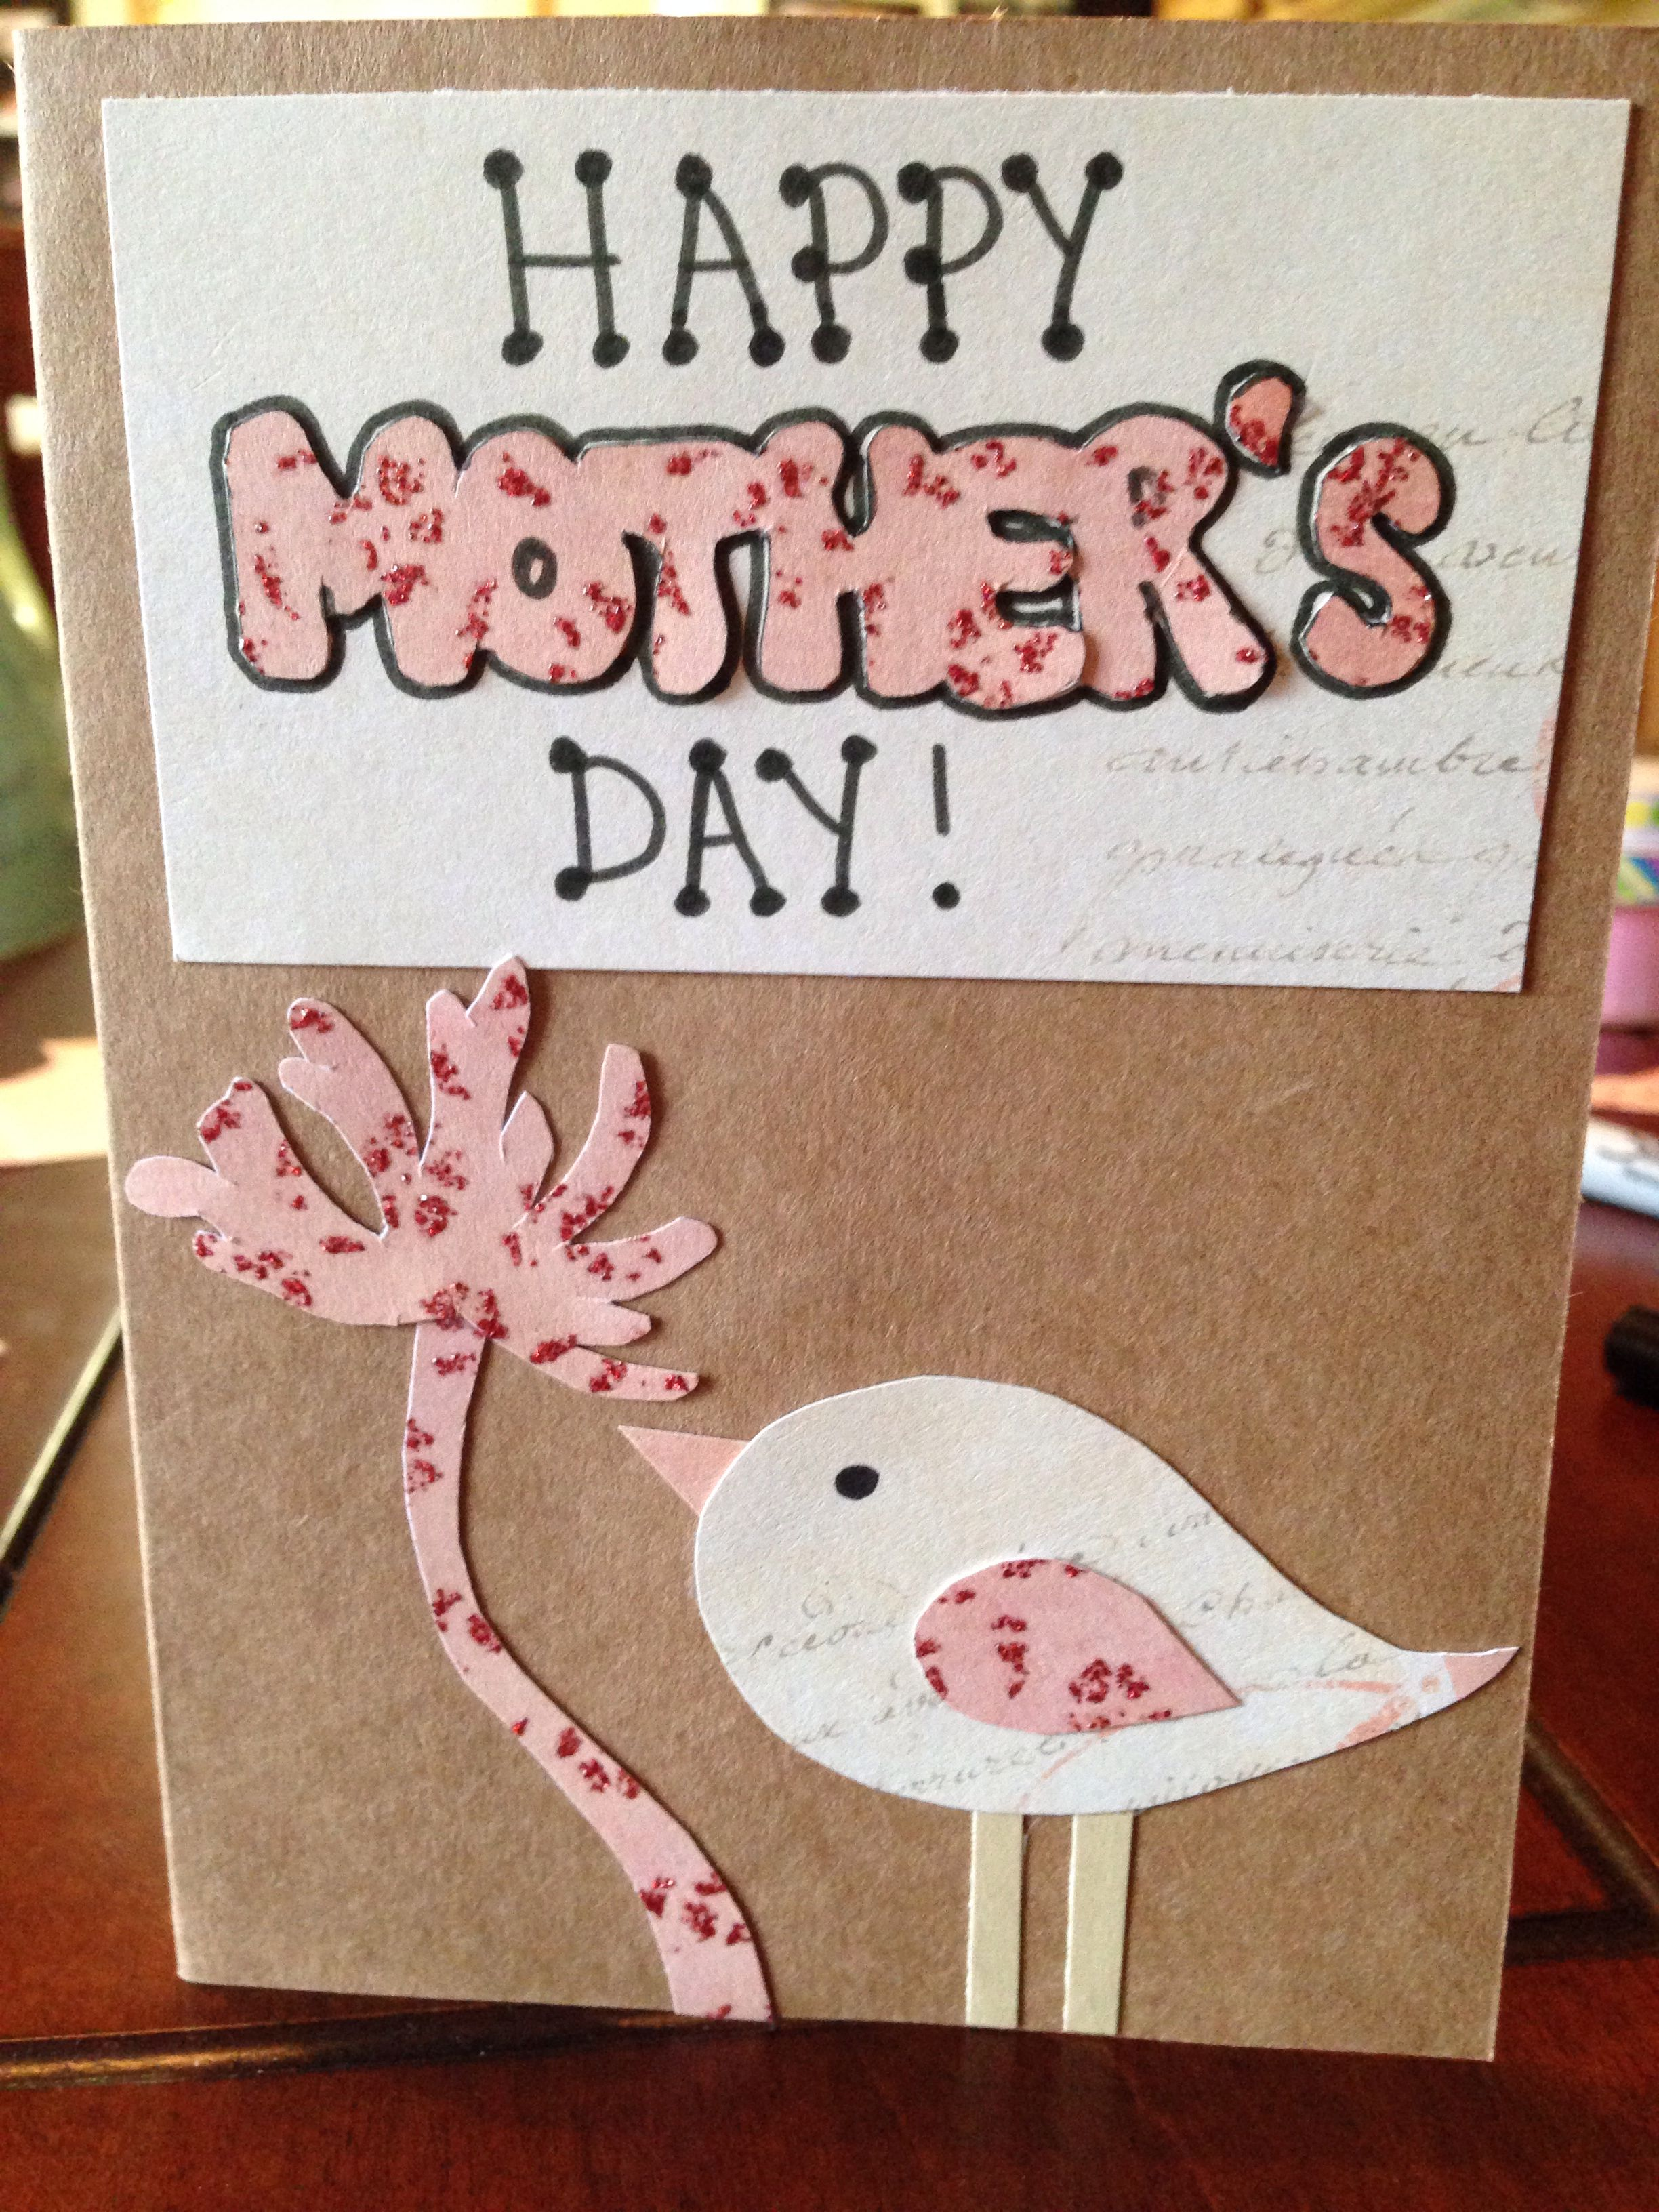 Homemade mothers day card holiday ideas pinterest Good ideas for mothers day card